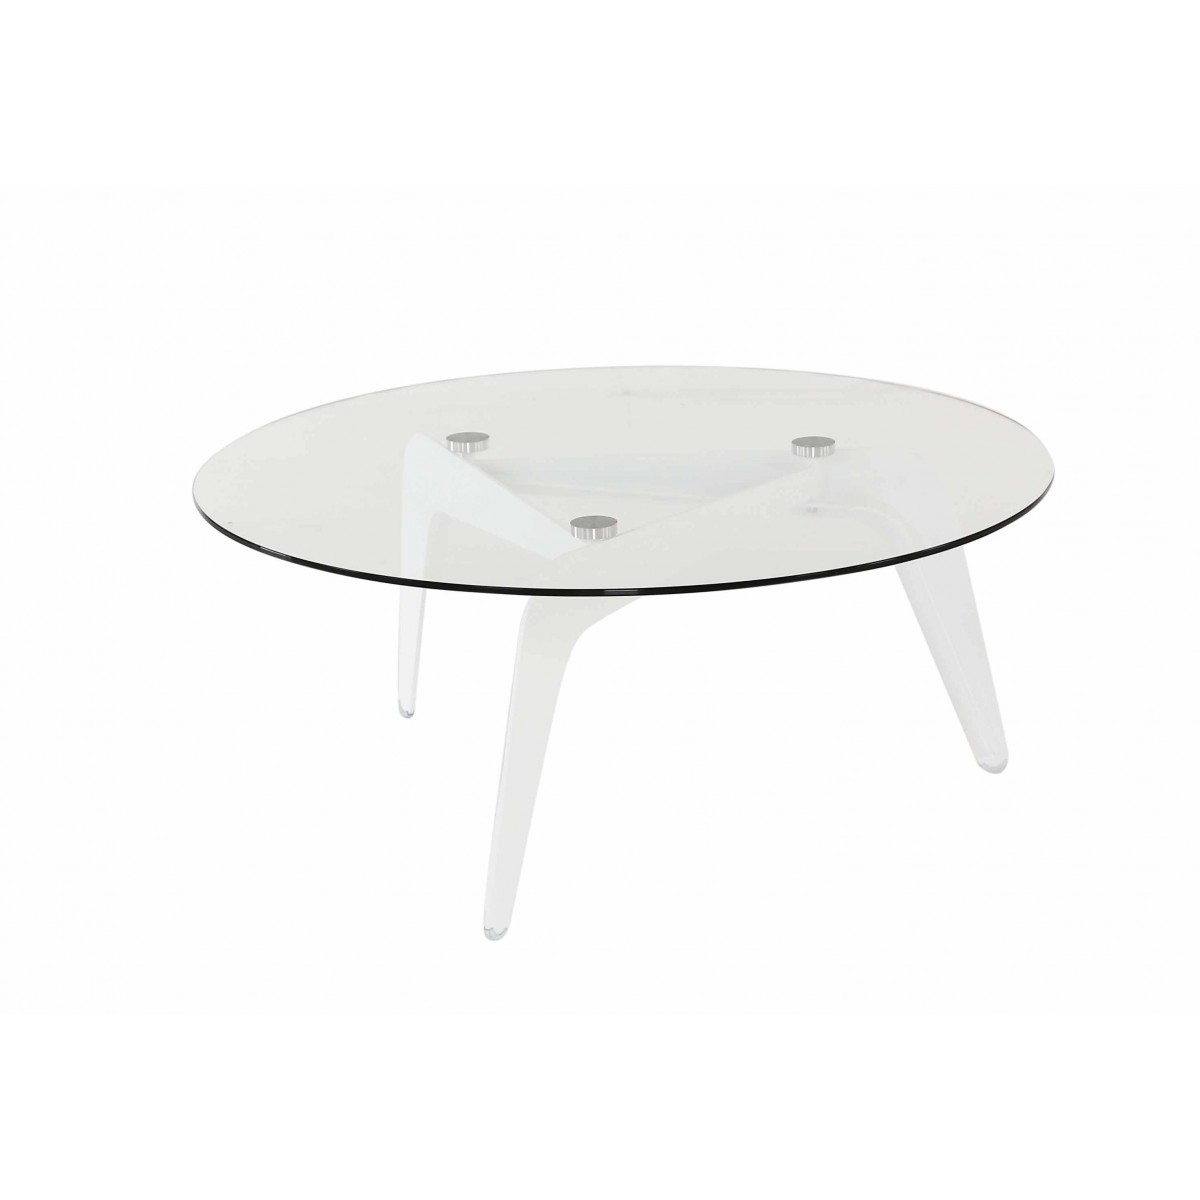 Table basse ronde en verre design mooviin - Table basse ronde en verre design ...